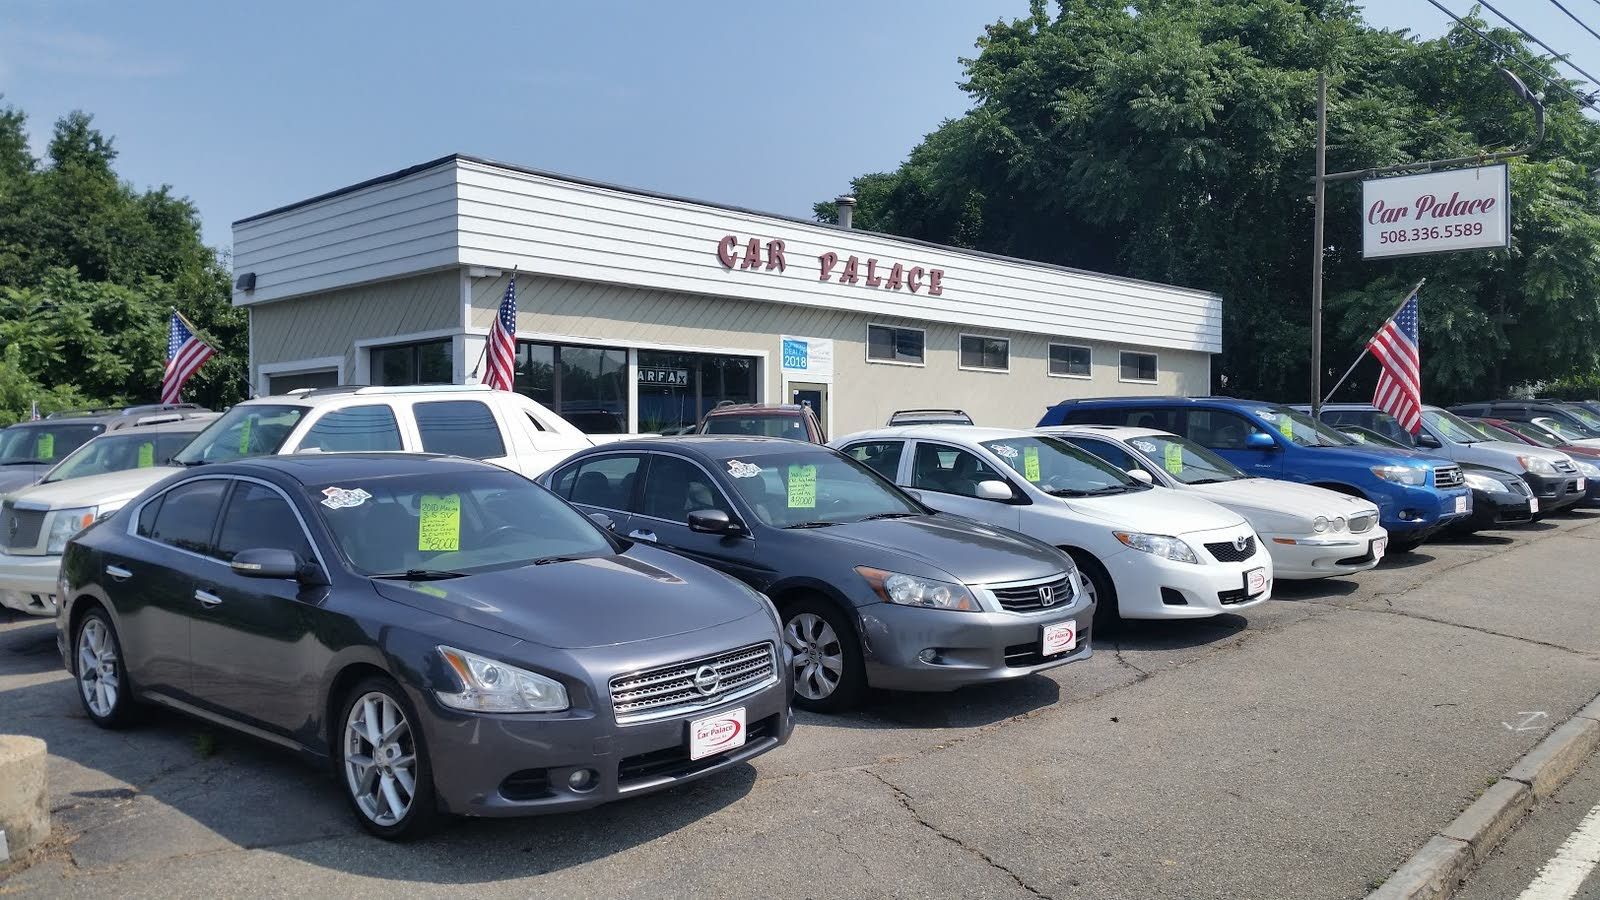 Gmc Dealers Ma >> The Car Palace - Seekonk, MA: Read Consumer reviews ...